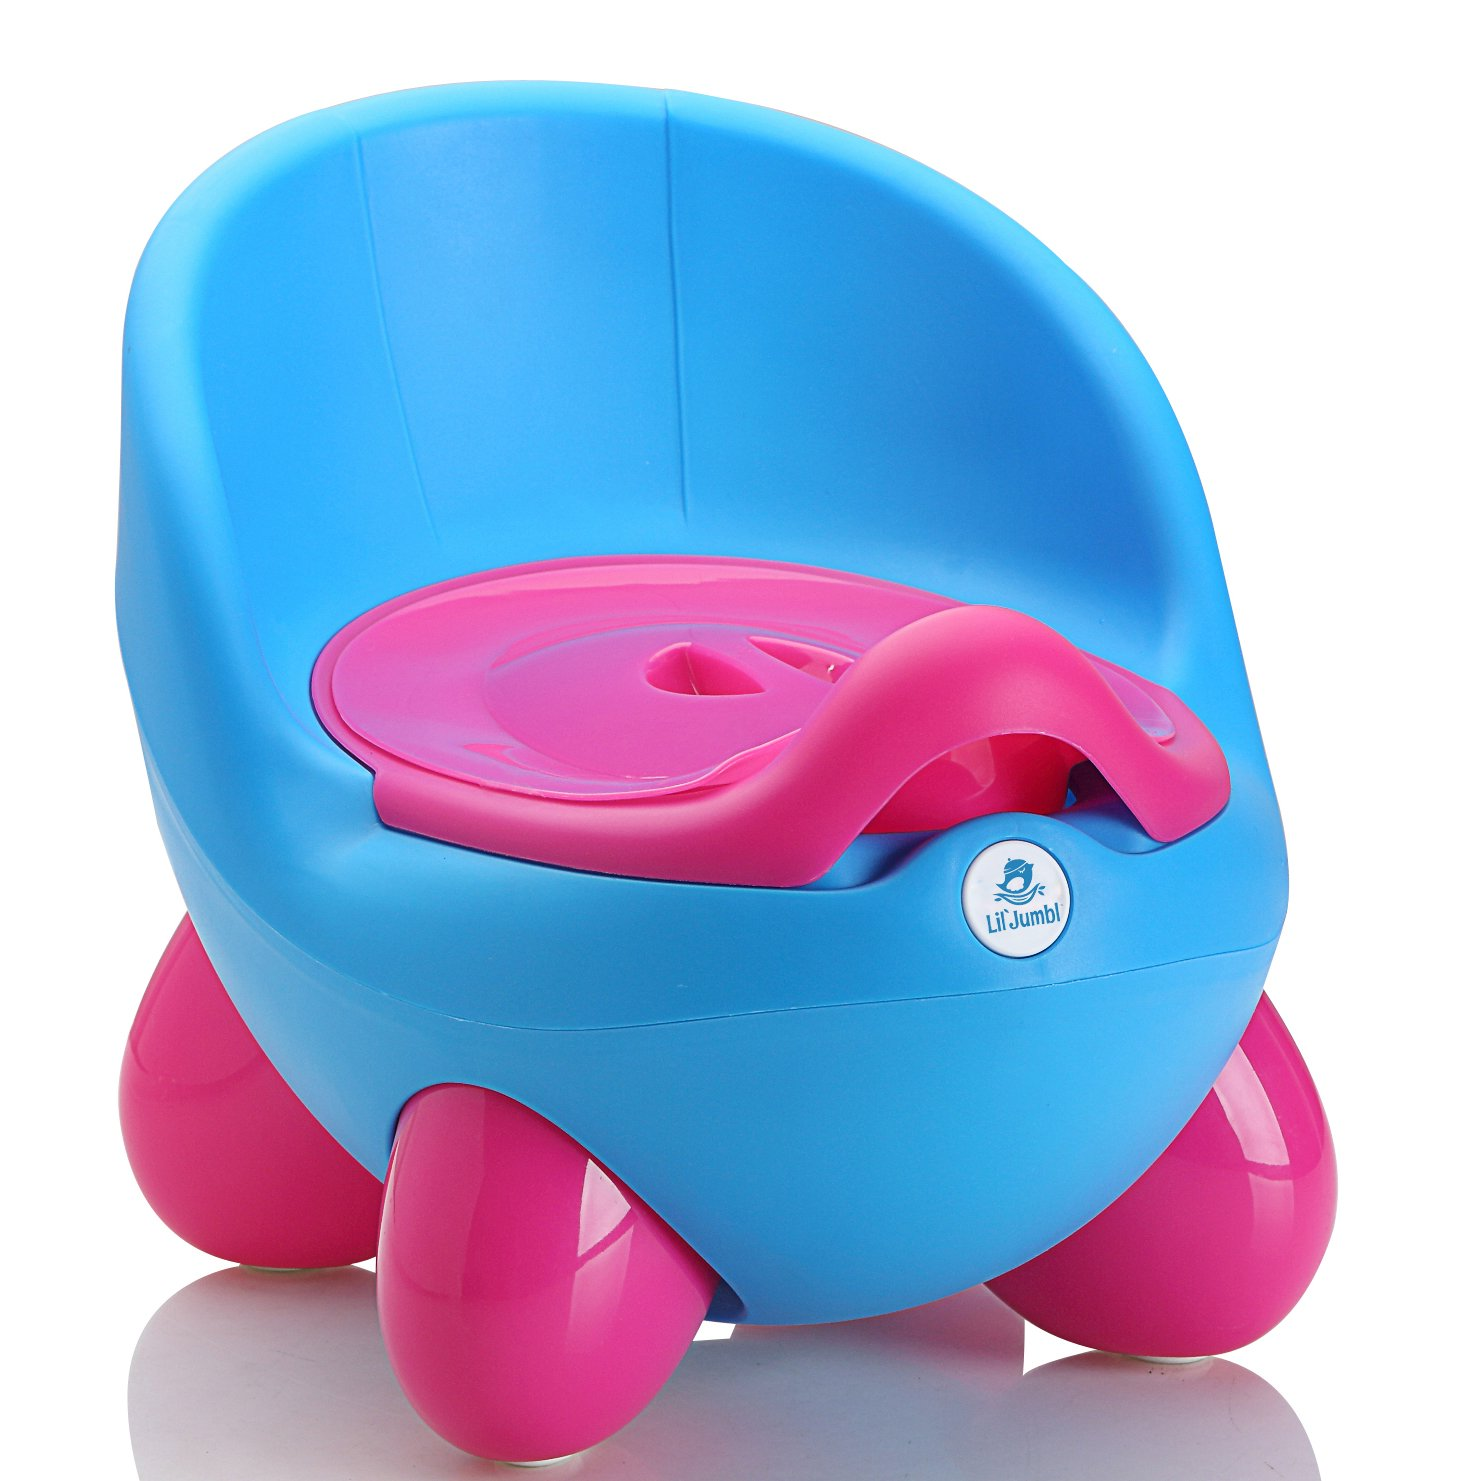 Lil' Jumbl Potty Training Eggie | Kids Toilet Chair Choice (Blue) Lil' Jumbl LJBP02B